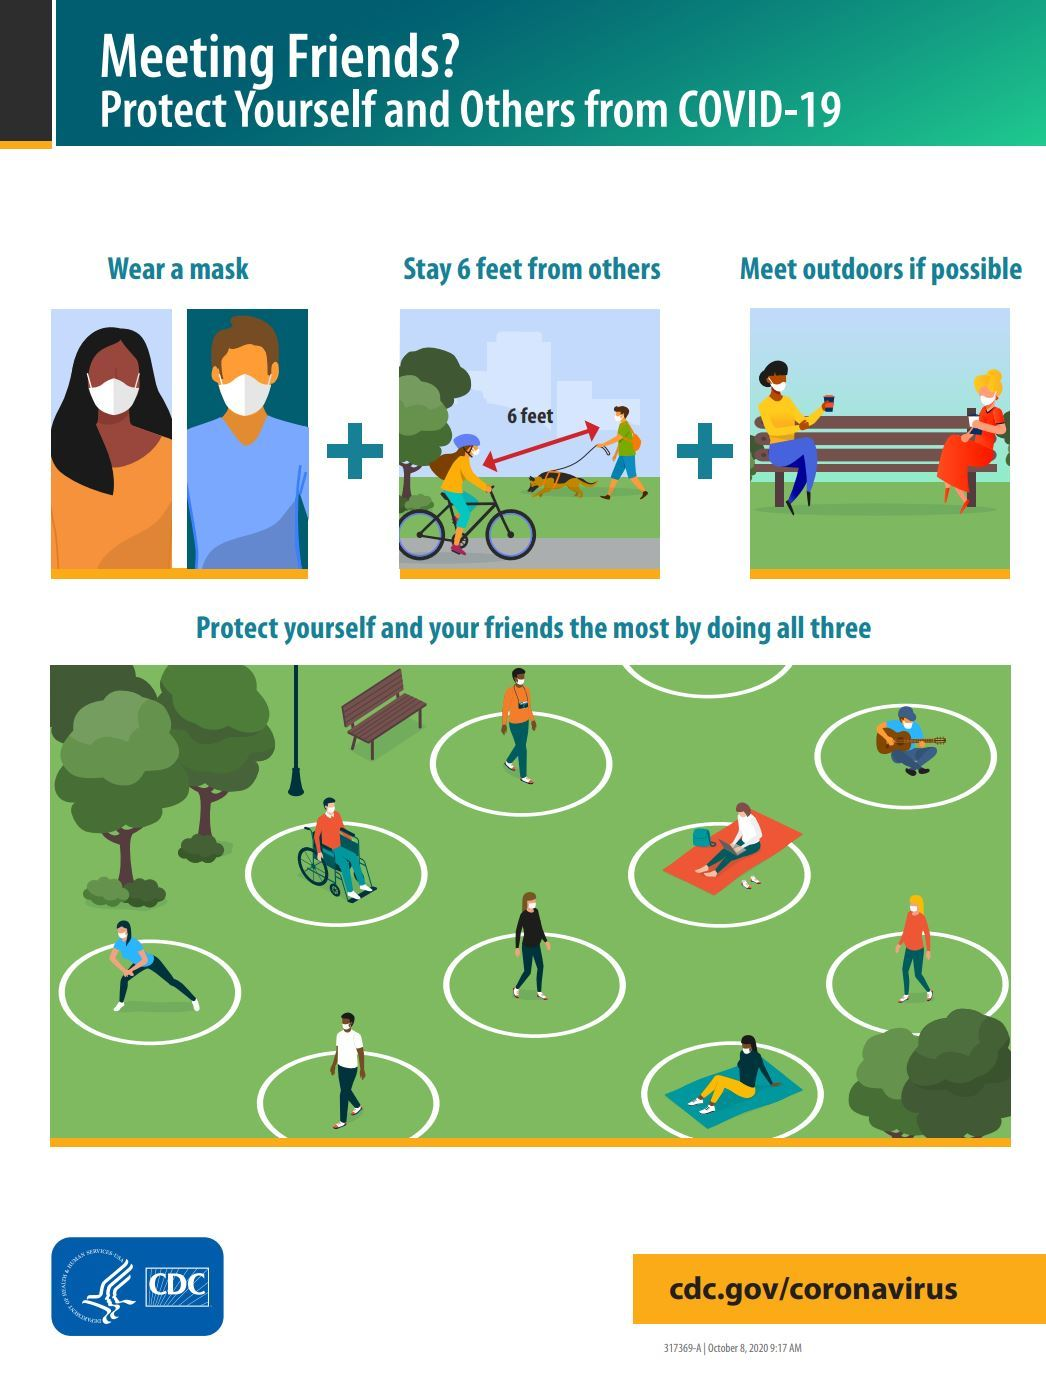 An PA Department of Health Image showing the precautions people should take when meeting friends.